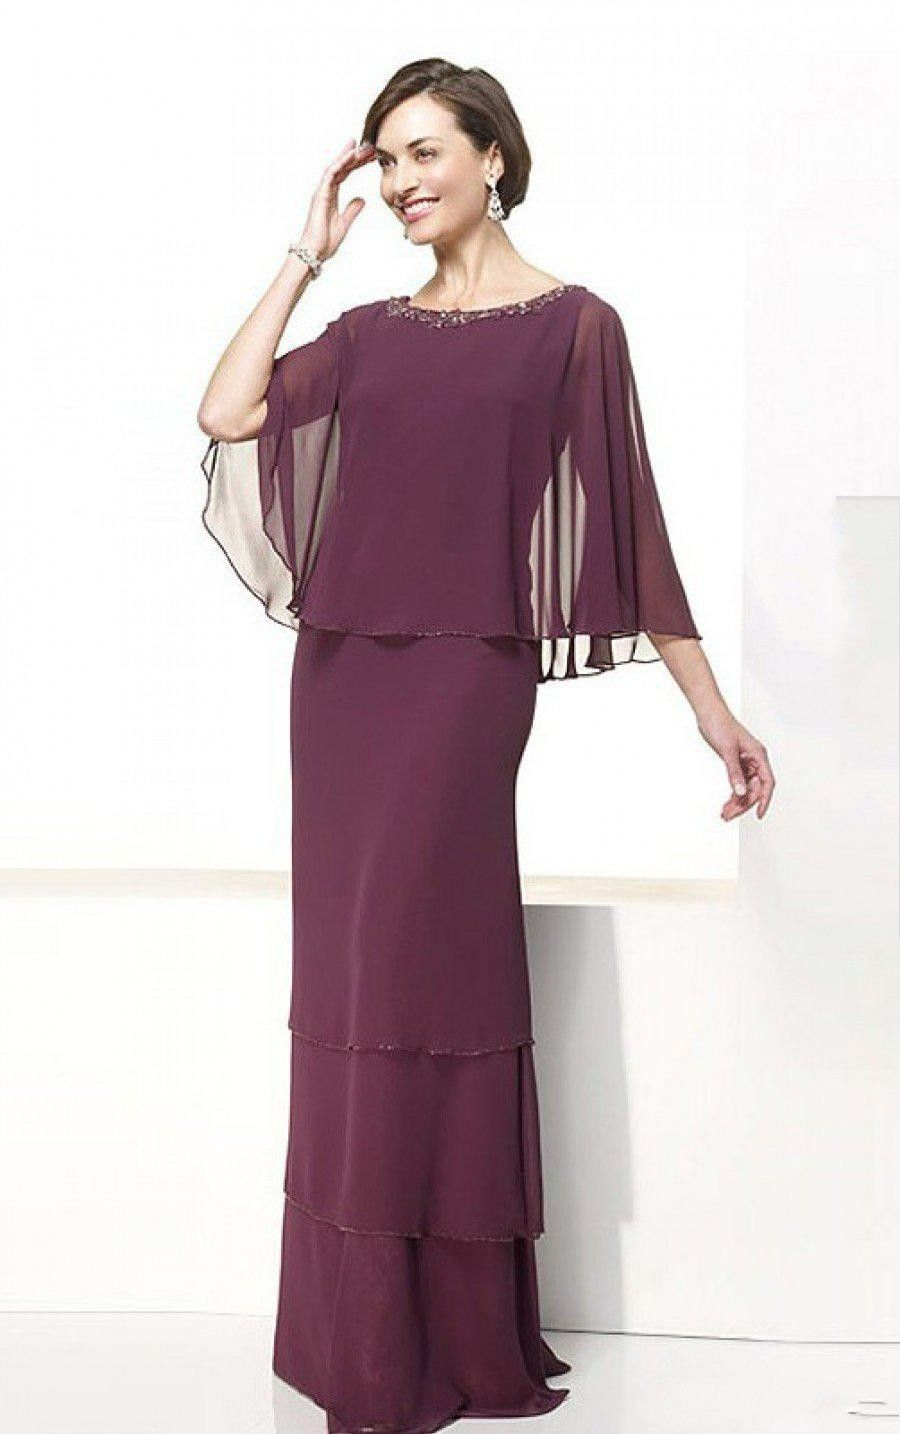 Wedding dresses for mother of the bride  Click to Buy ucuc Sexy Sheath Mother of the Bride Dress Burgundy